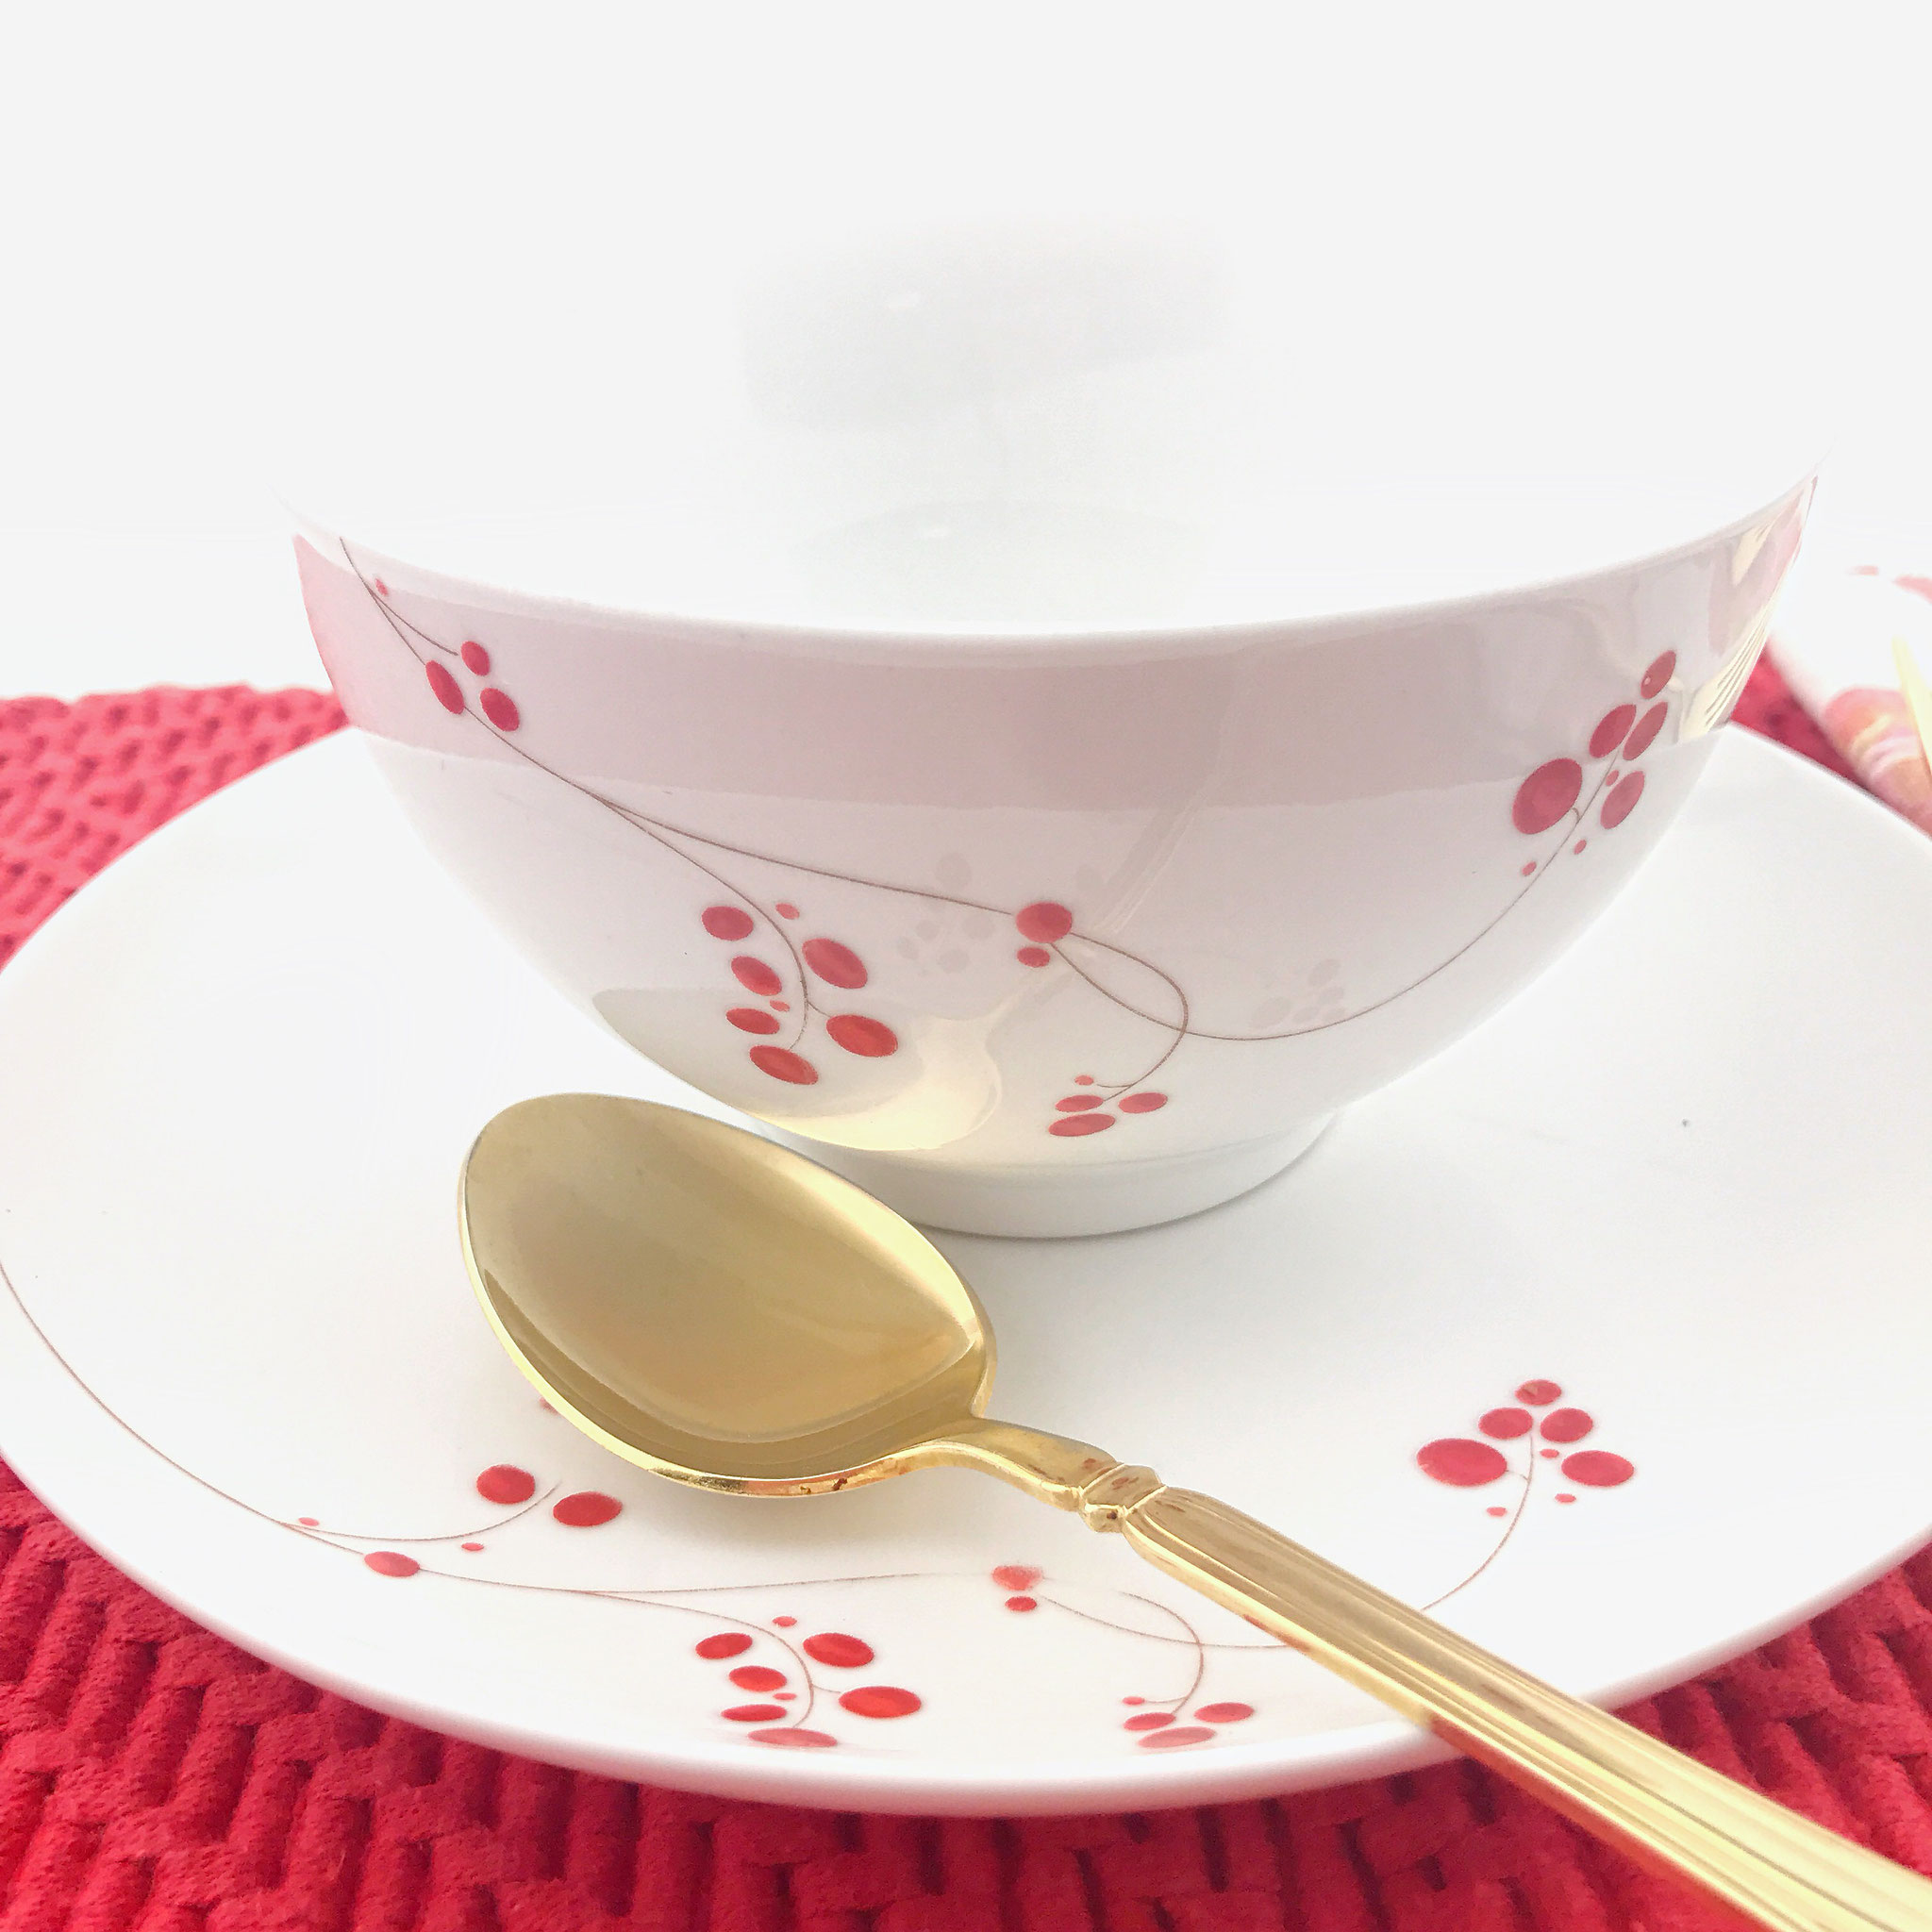 Gold Flatware Brings Unexpected Elegance To The Dinner Table Tupperware Classy Red Collection It Also Can Mean A Daily Dose Of When Eating Cold Leftovers Out Plastic Containers